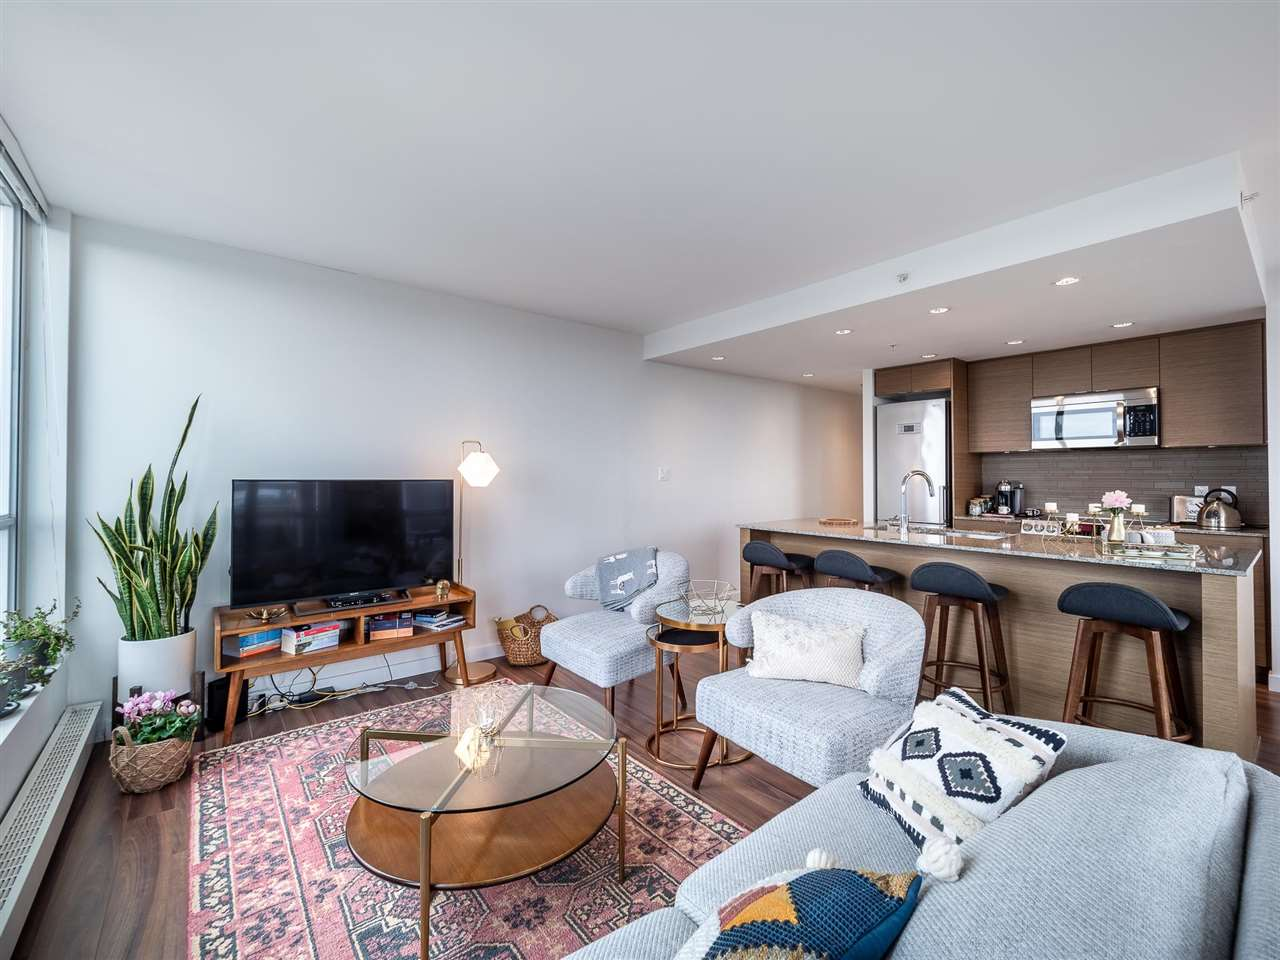 1607 135 E 17TH STREET - Central Lonsdale Apartment/Condo for sale, 1 Bedroom (R2603489) - #10